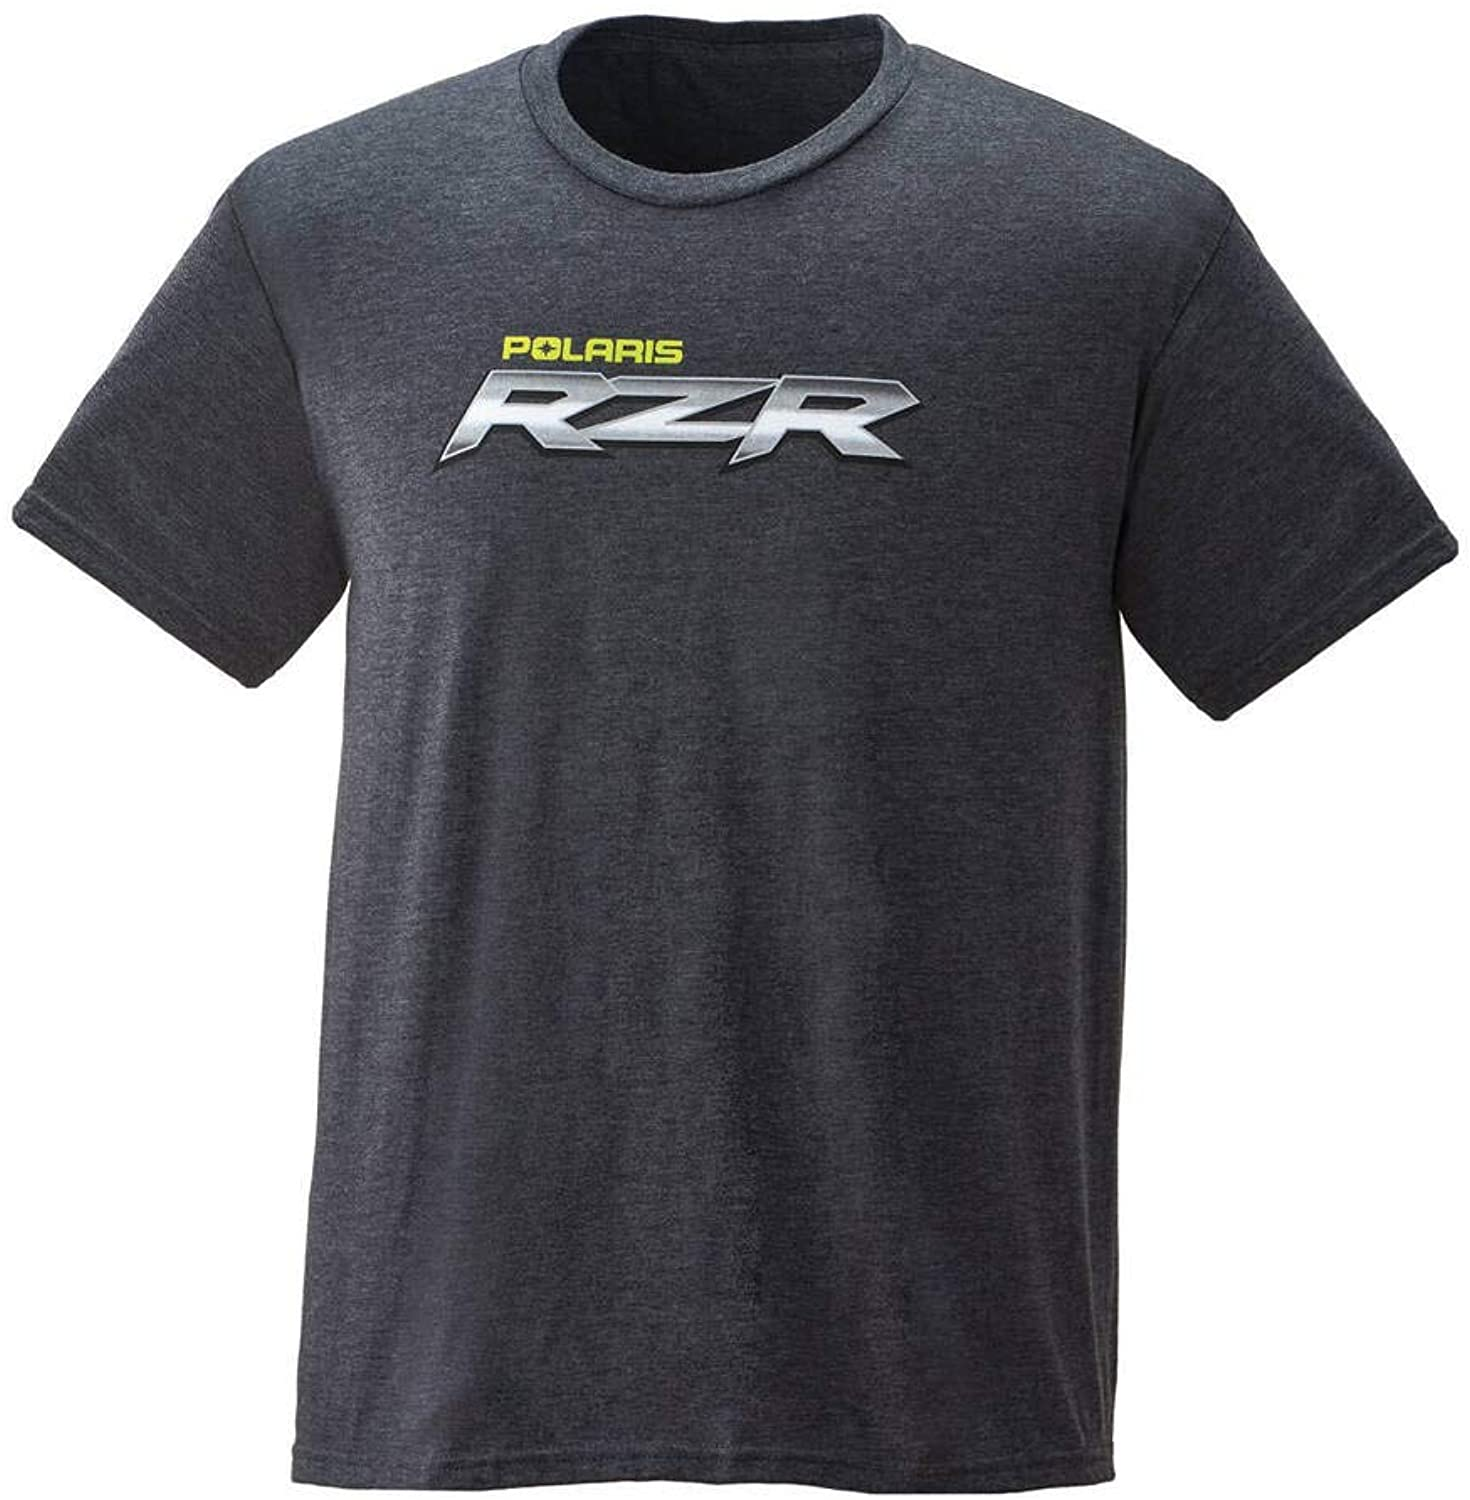 RZR Men's Classic Graphic T-Shirt with RZR Logo